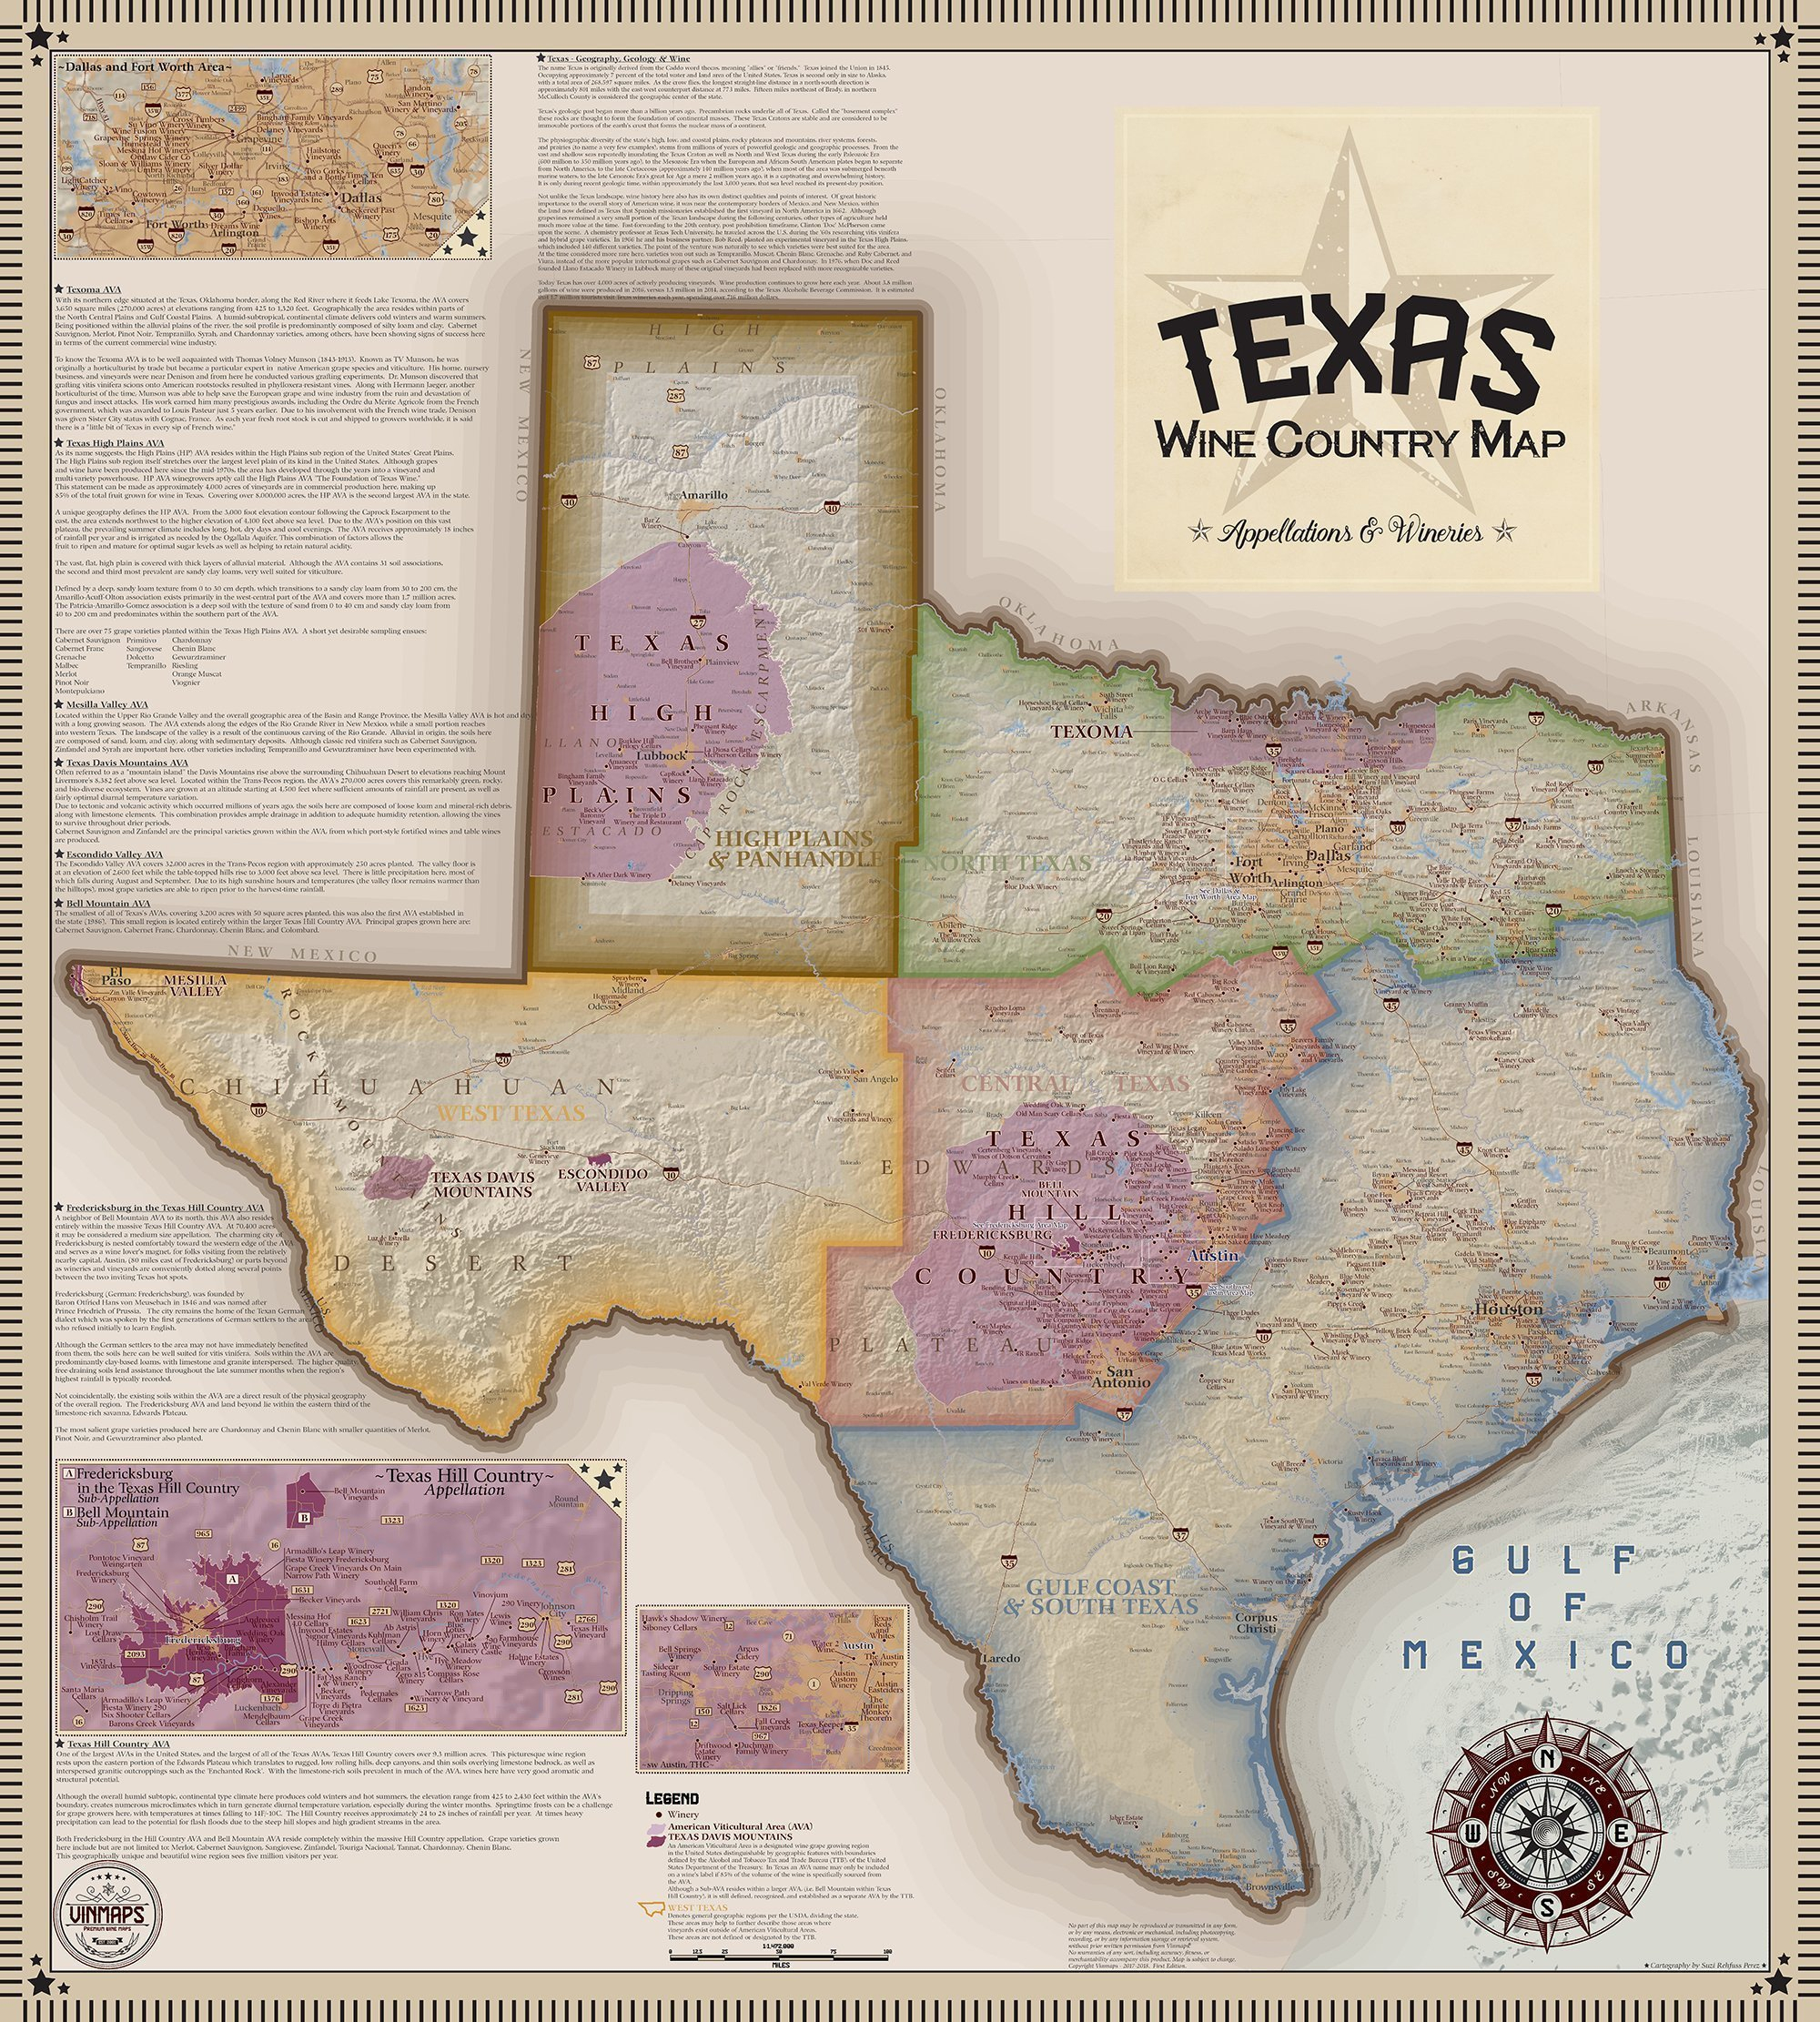 Texas Wine Country Map, Appellations & Wineries - Vinmaps® - Texas Winery Map